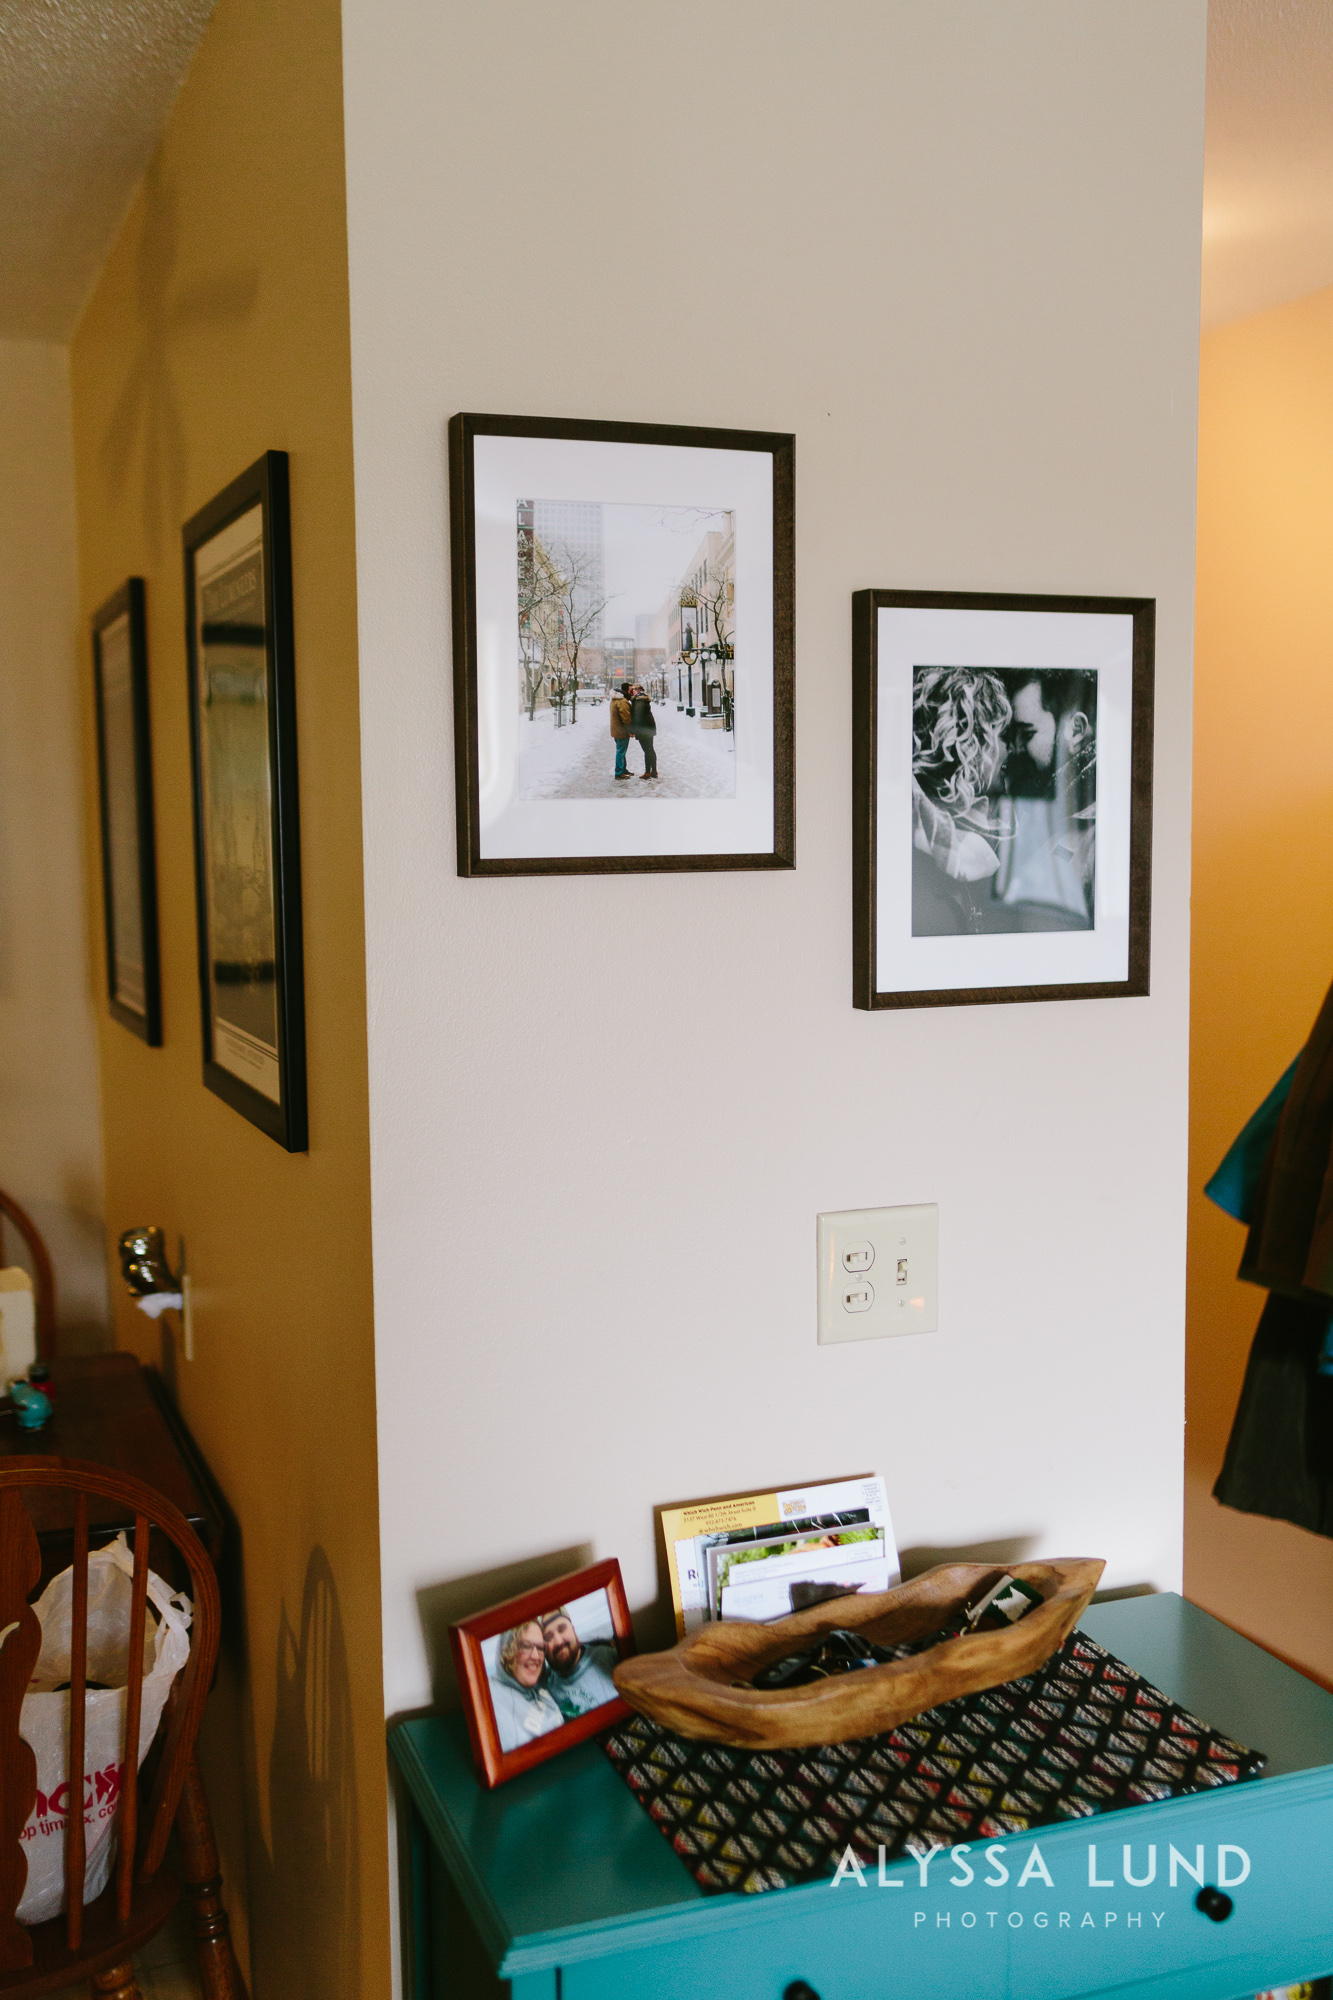 Engagement wall gallery by Alyssa Lund Photography